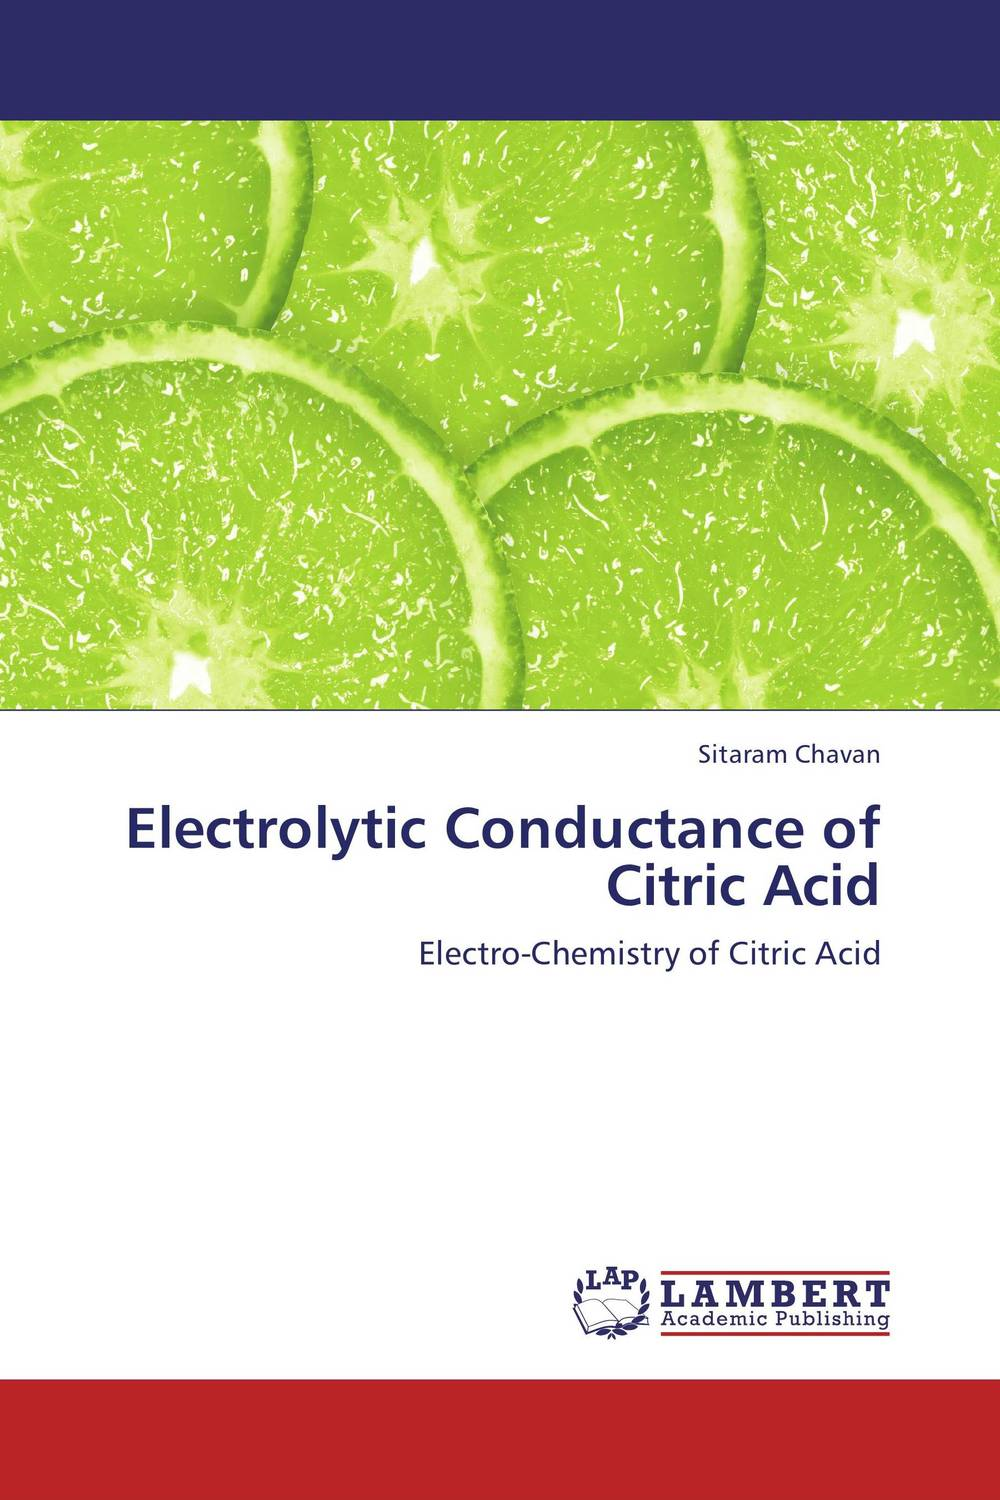 Electrolytic Conductance of Citric Acid electrolytic conductance of citric acid